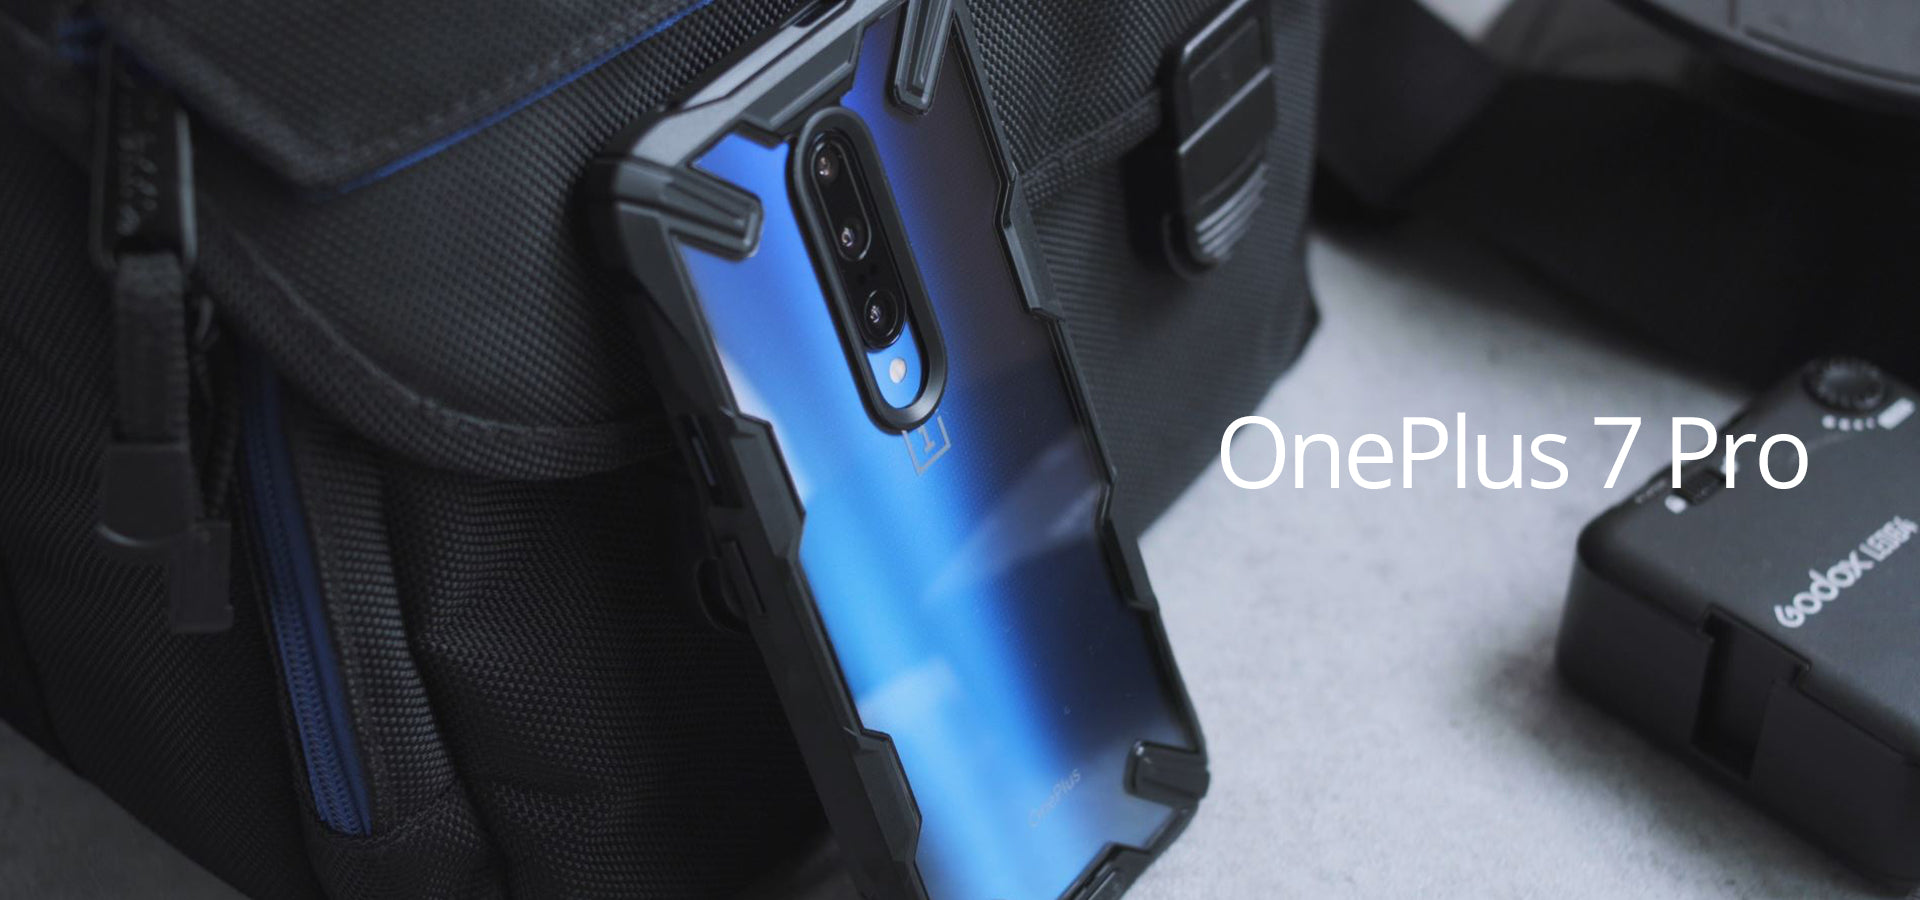 ringke oneplus 7 pro case collection banner